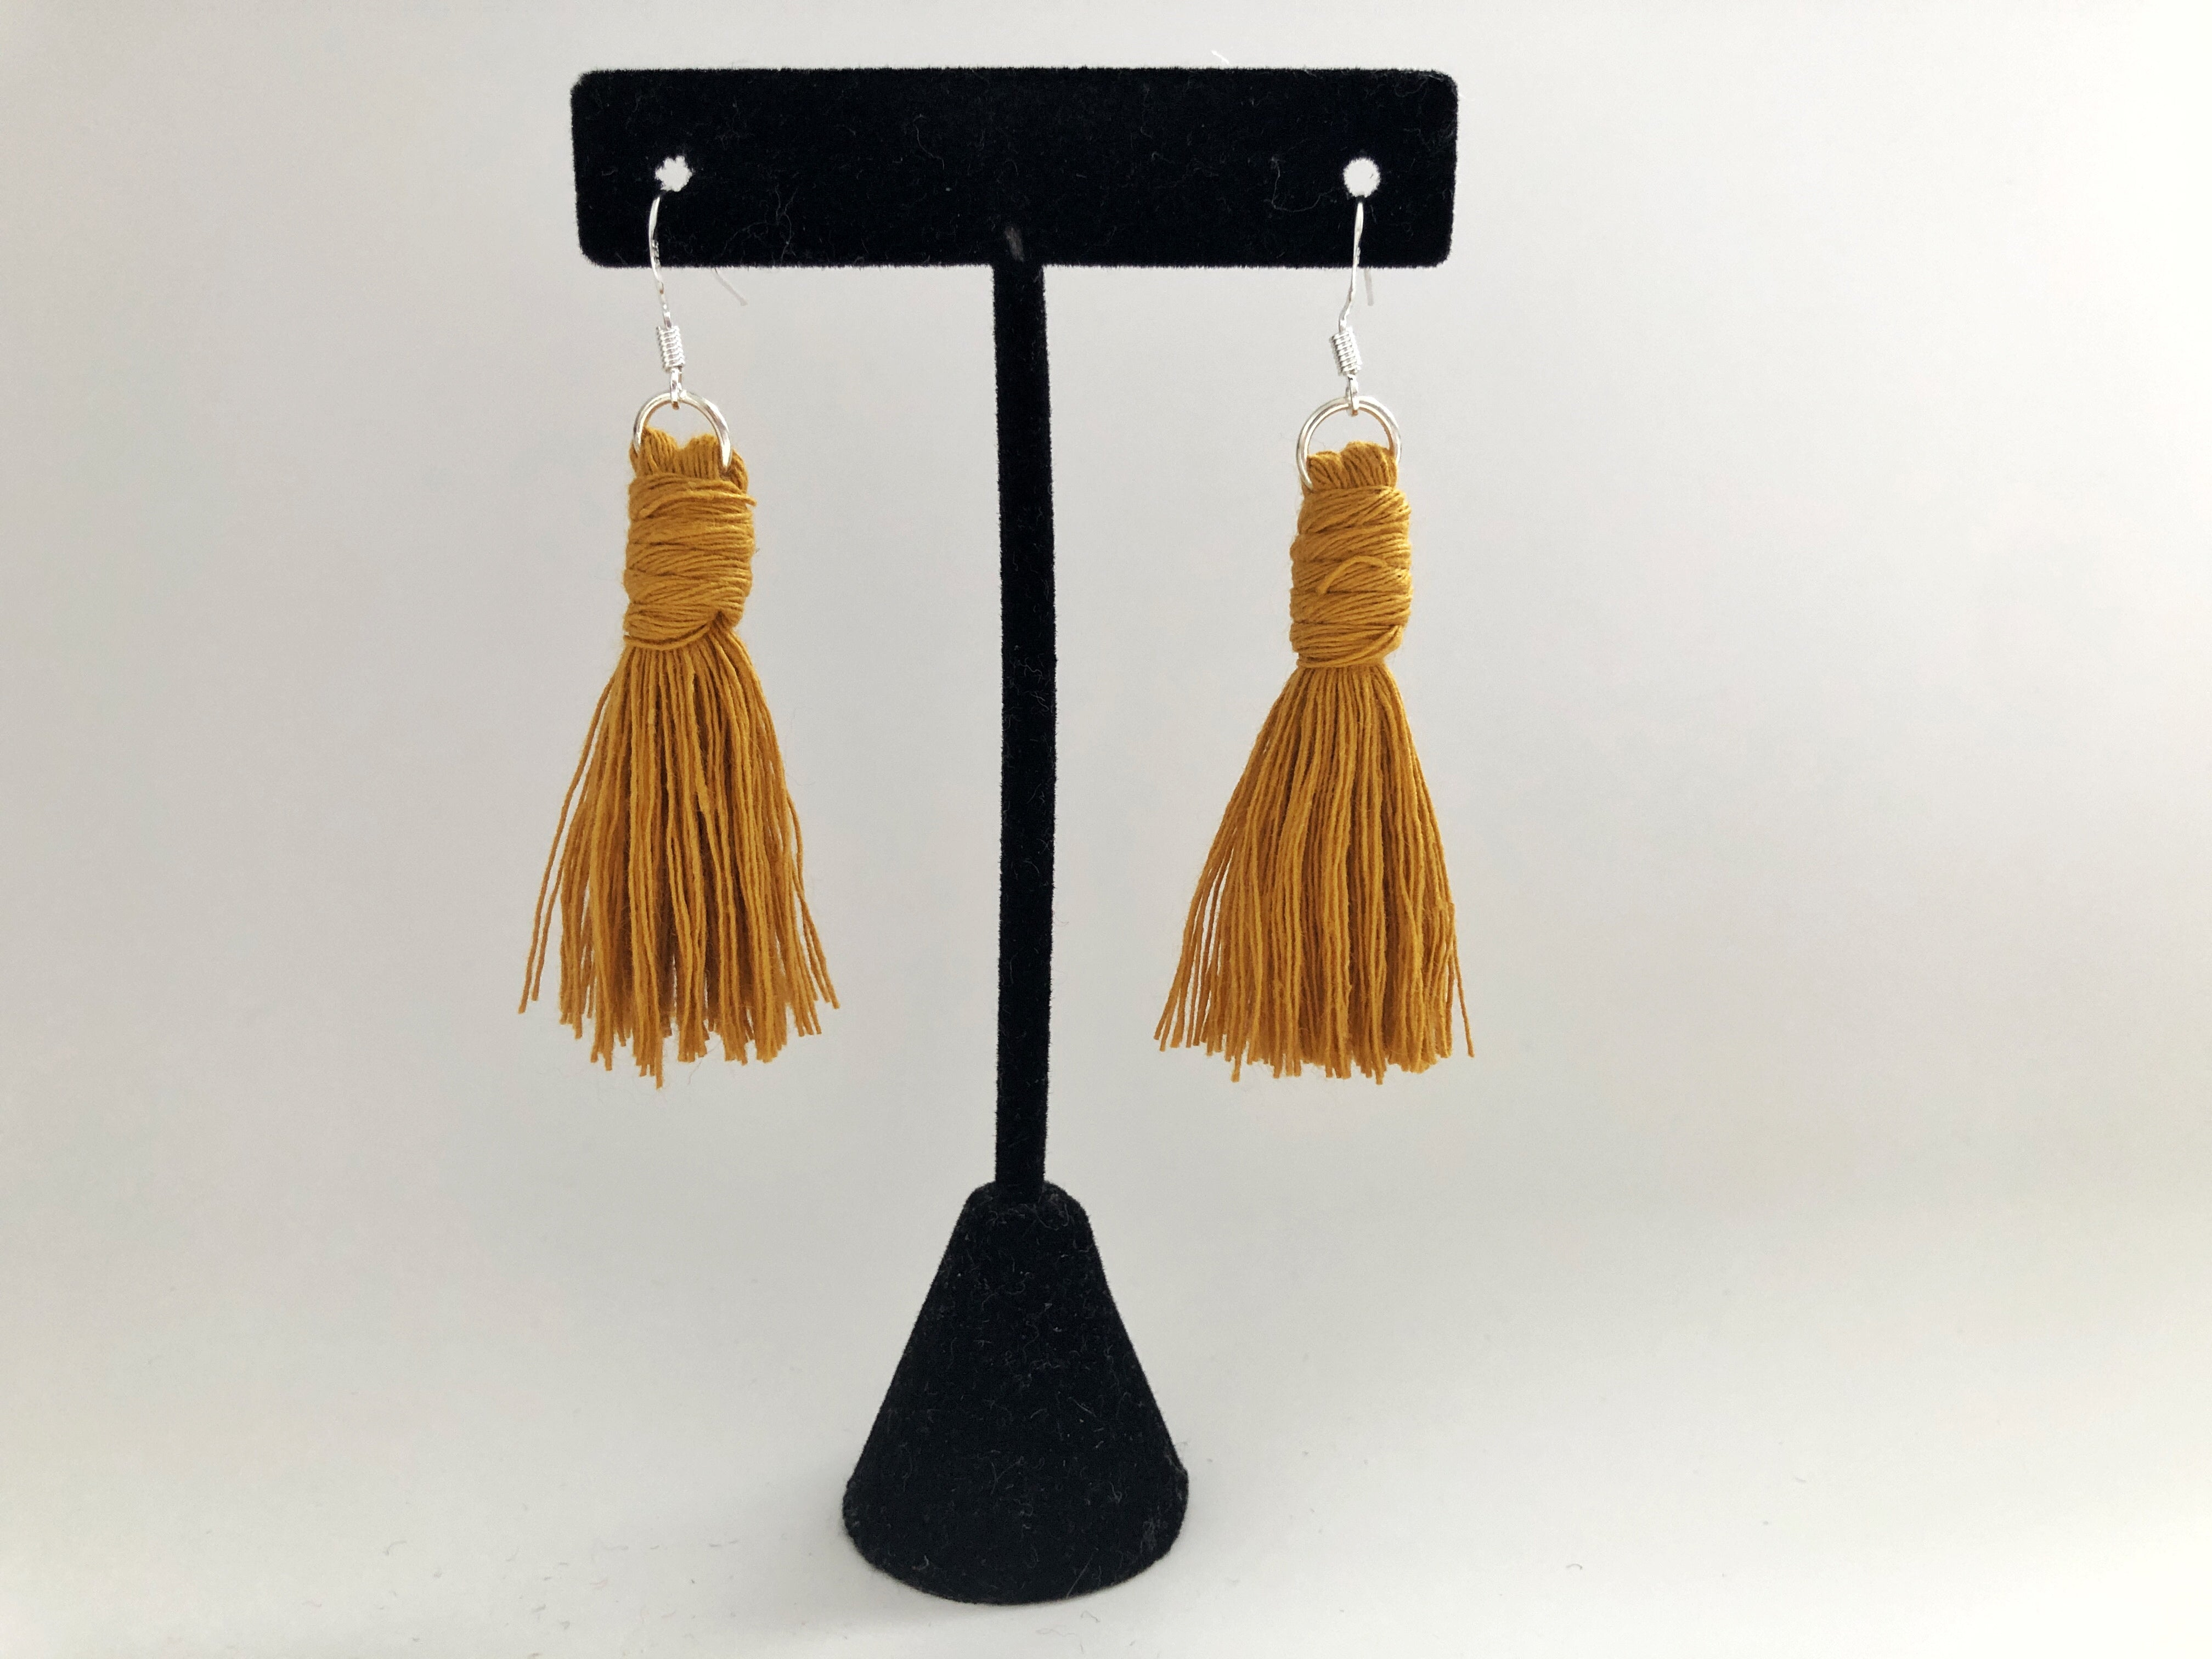 Tassel Earrings - Small